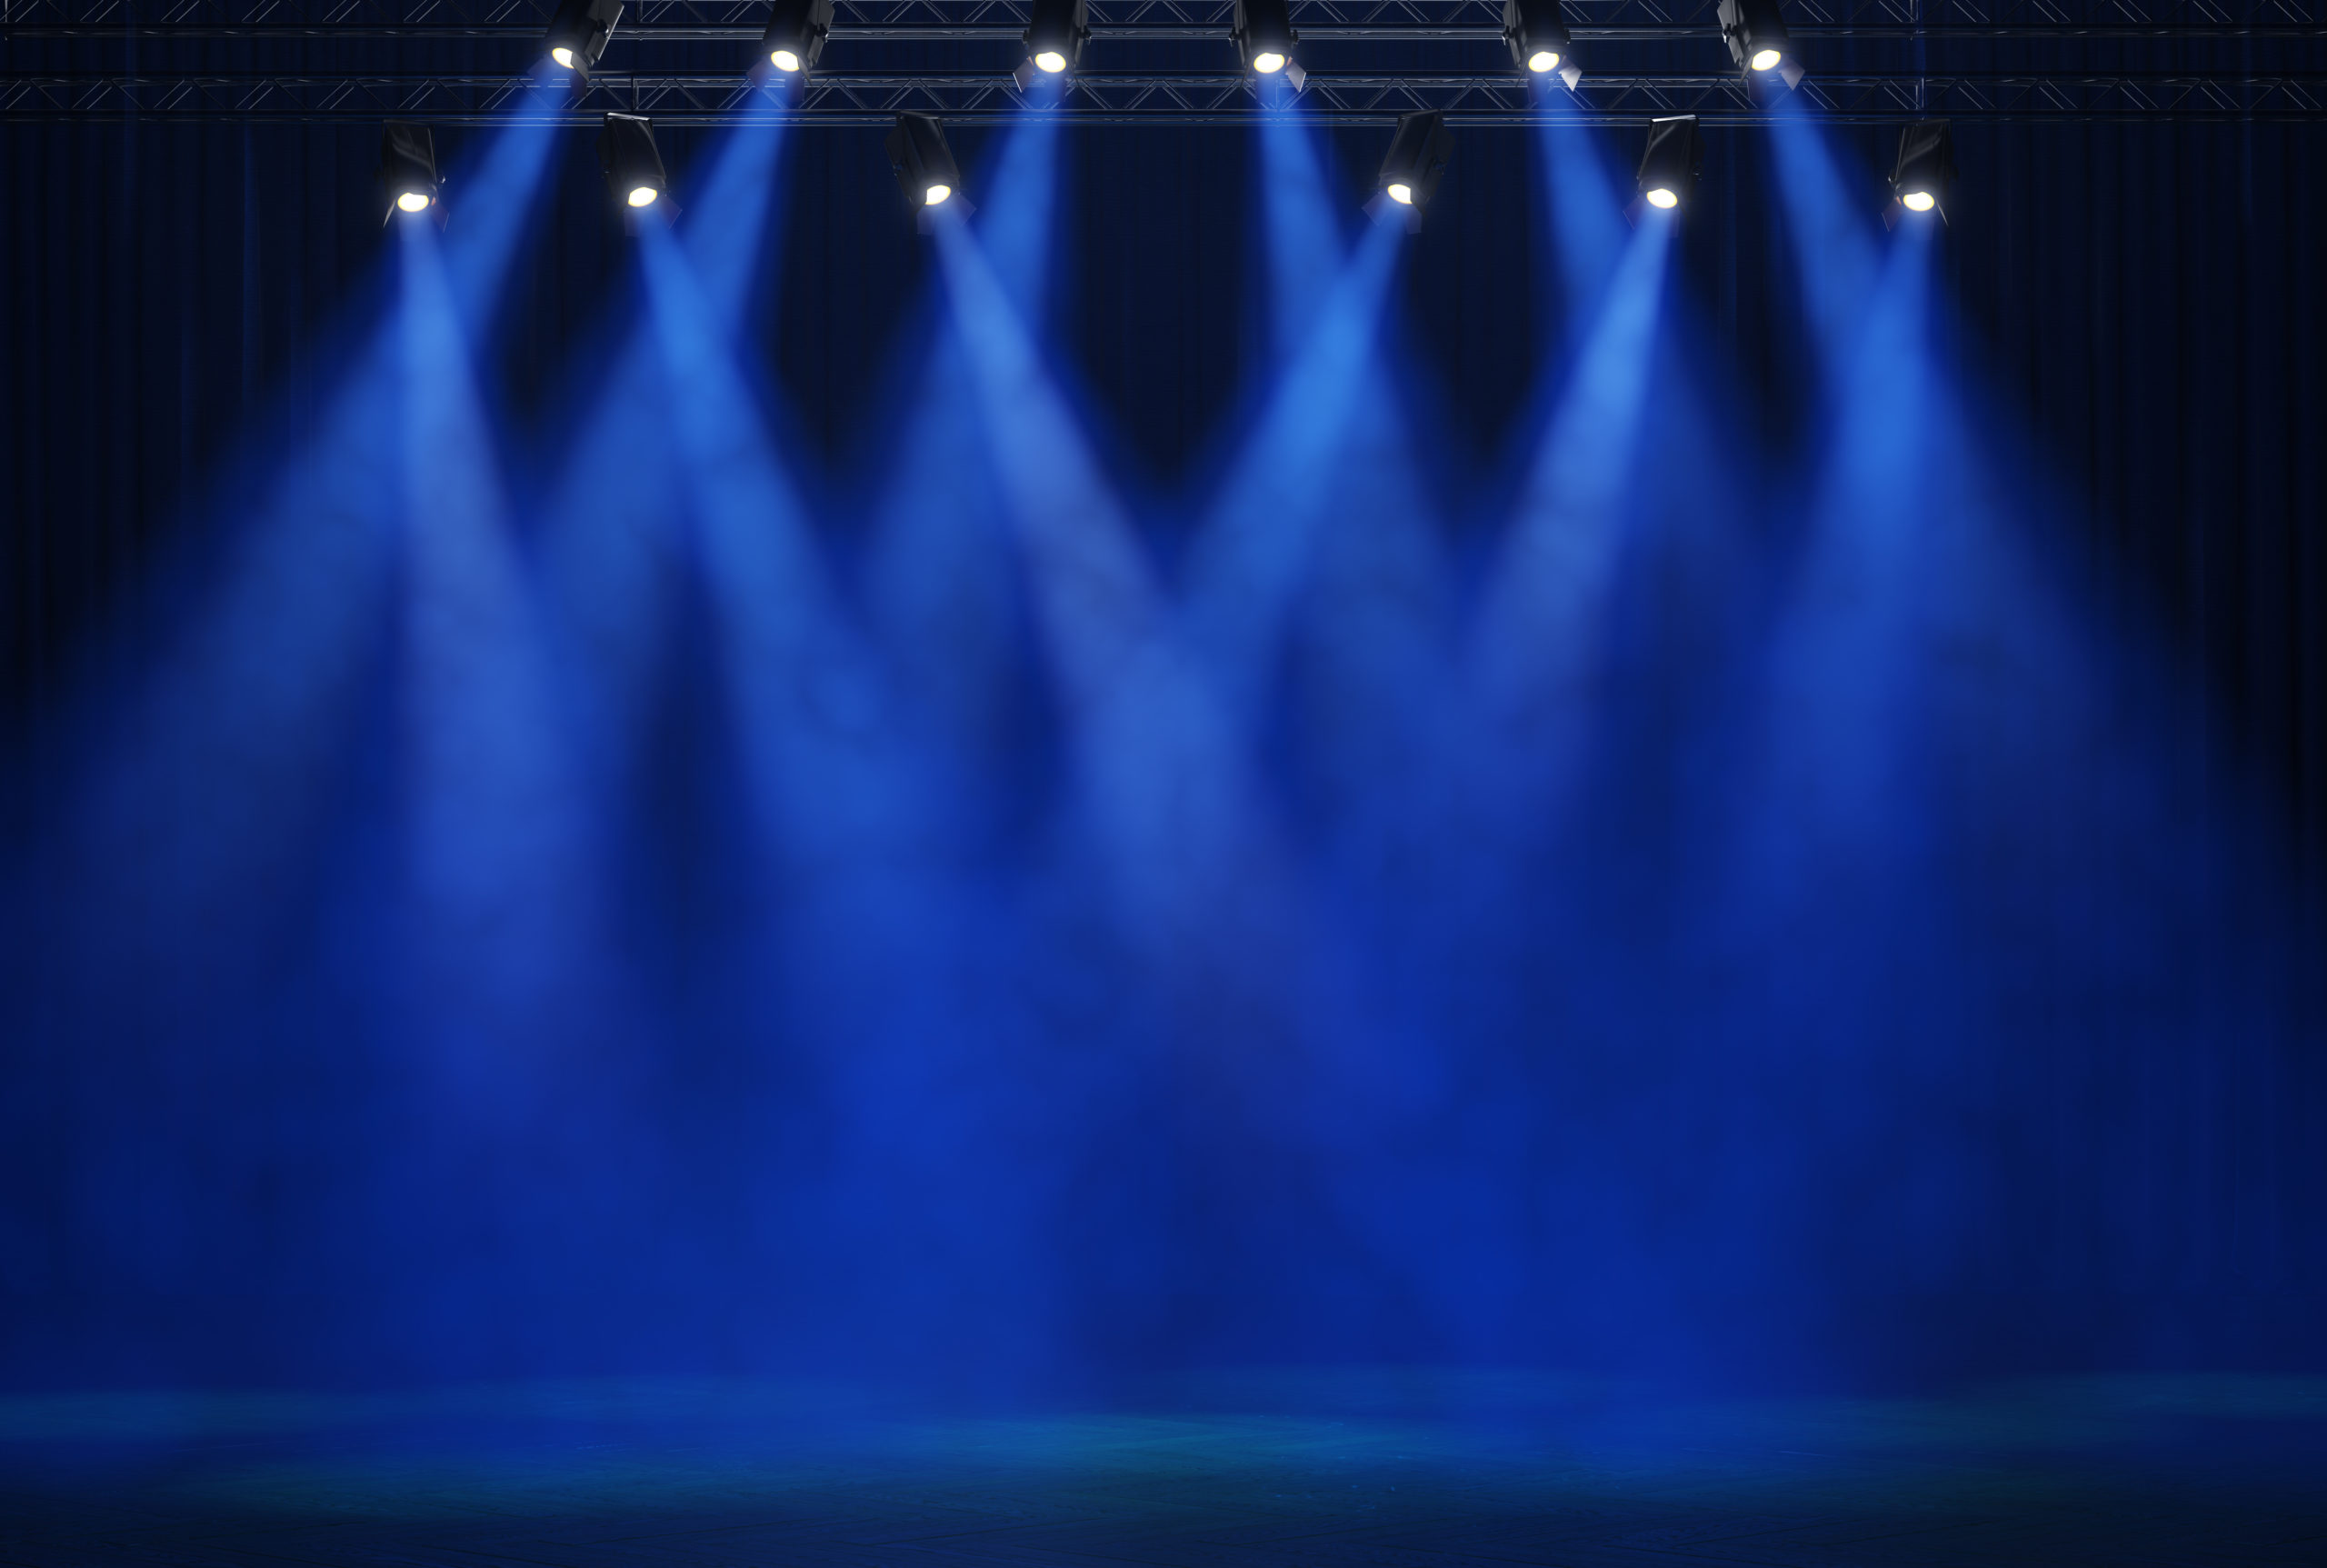 A empty stage lit with blue light